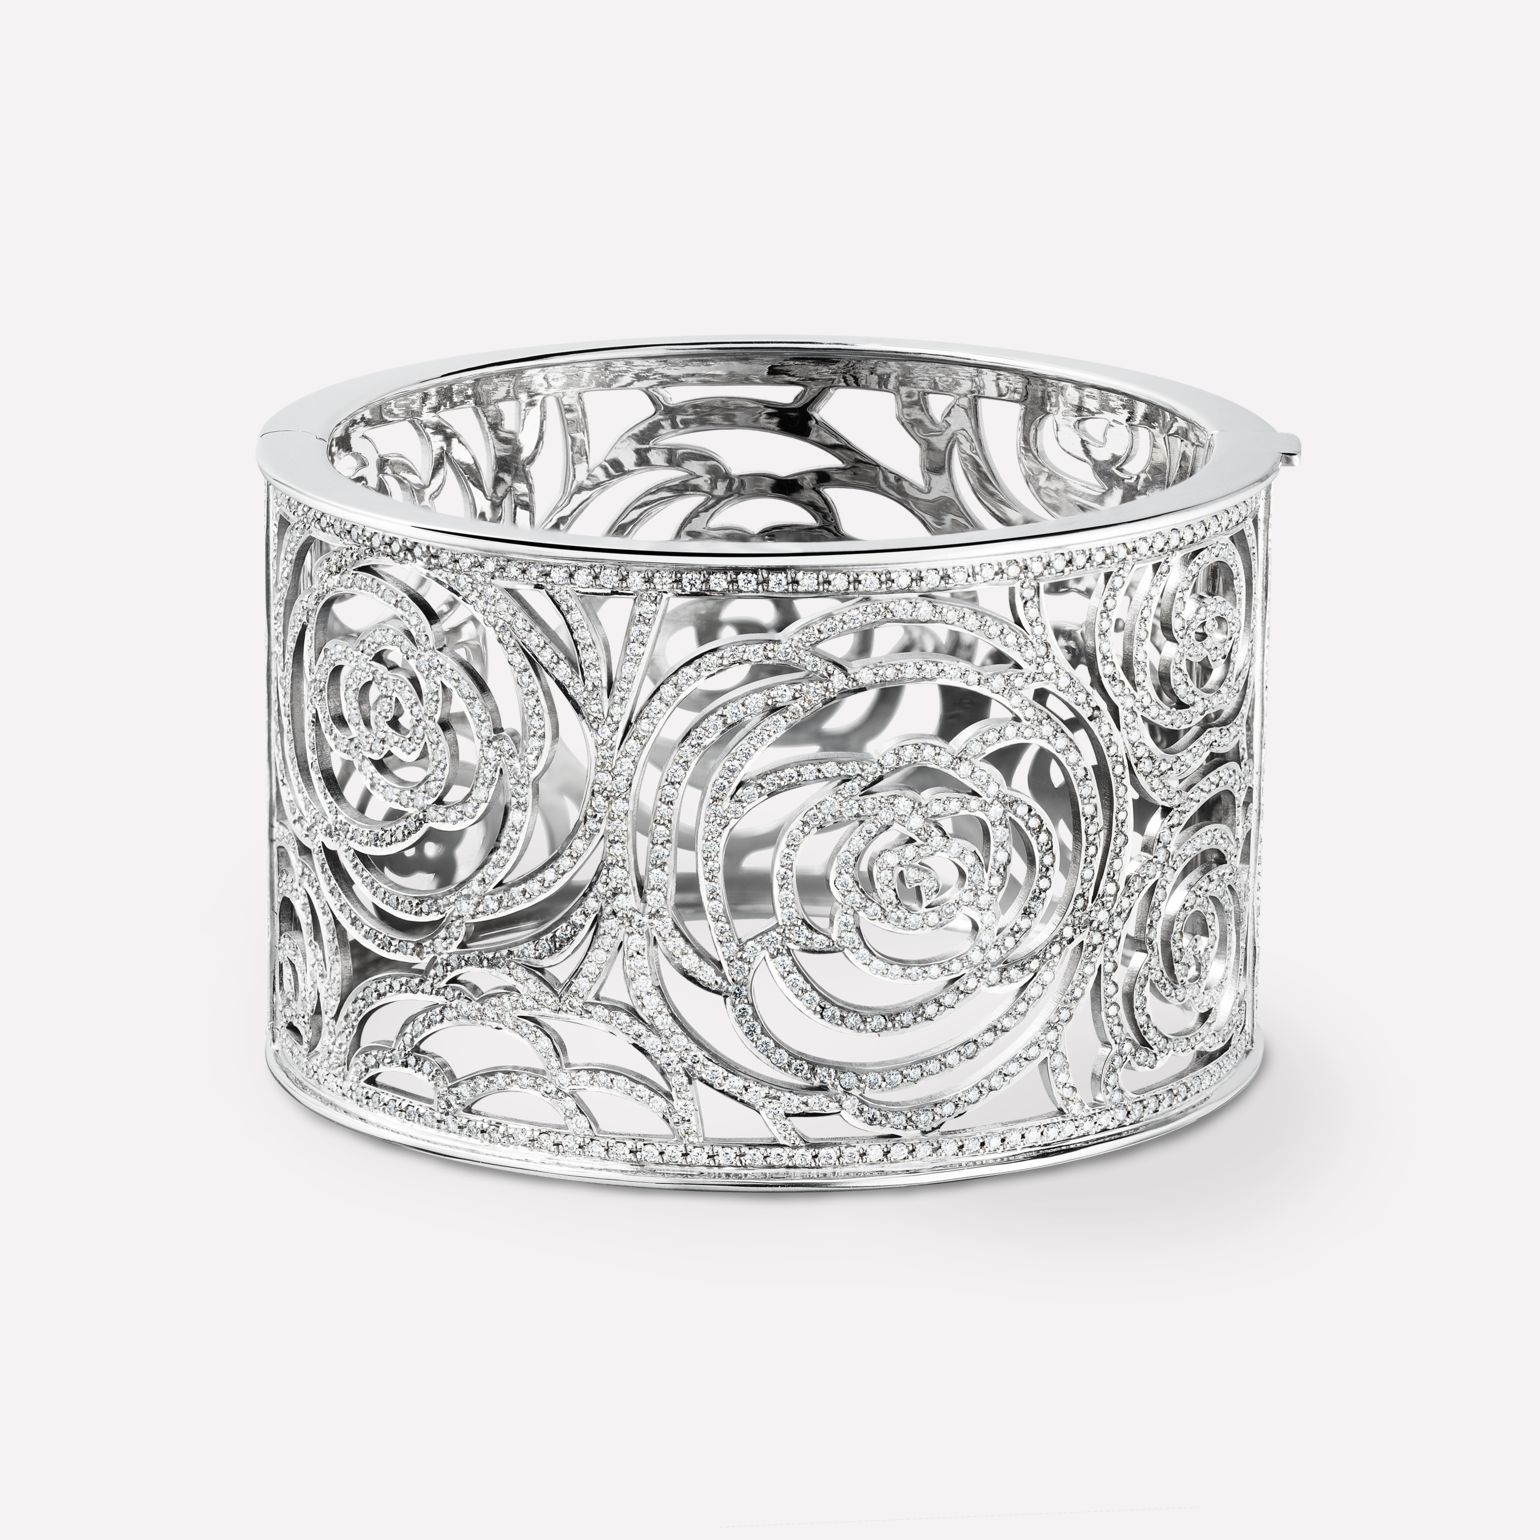 Camélia bracelet Camélia Ajouré cuff, in 18K white gold and diamonds